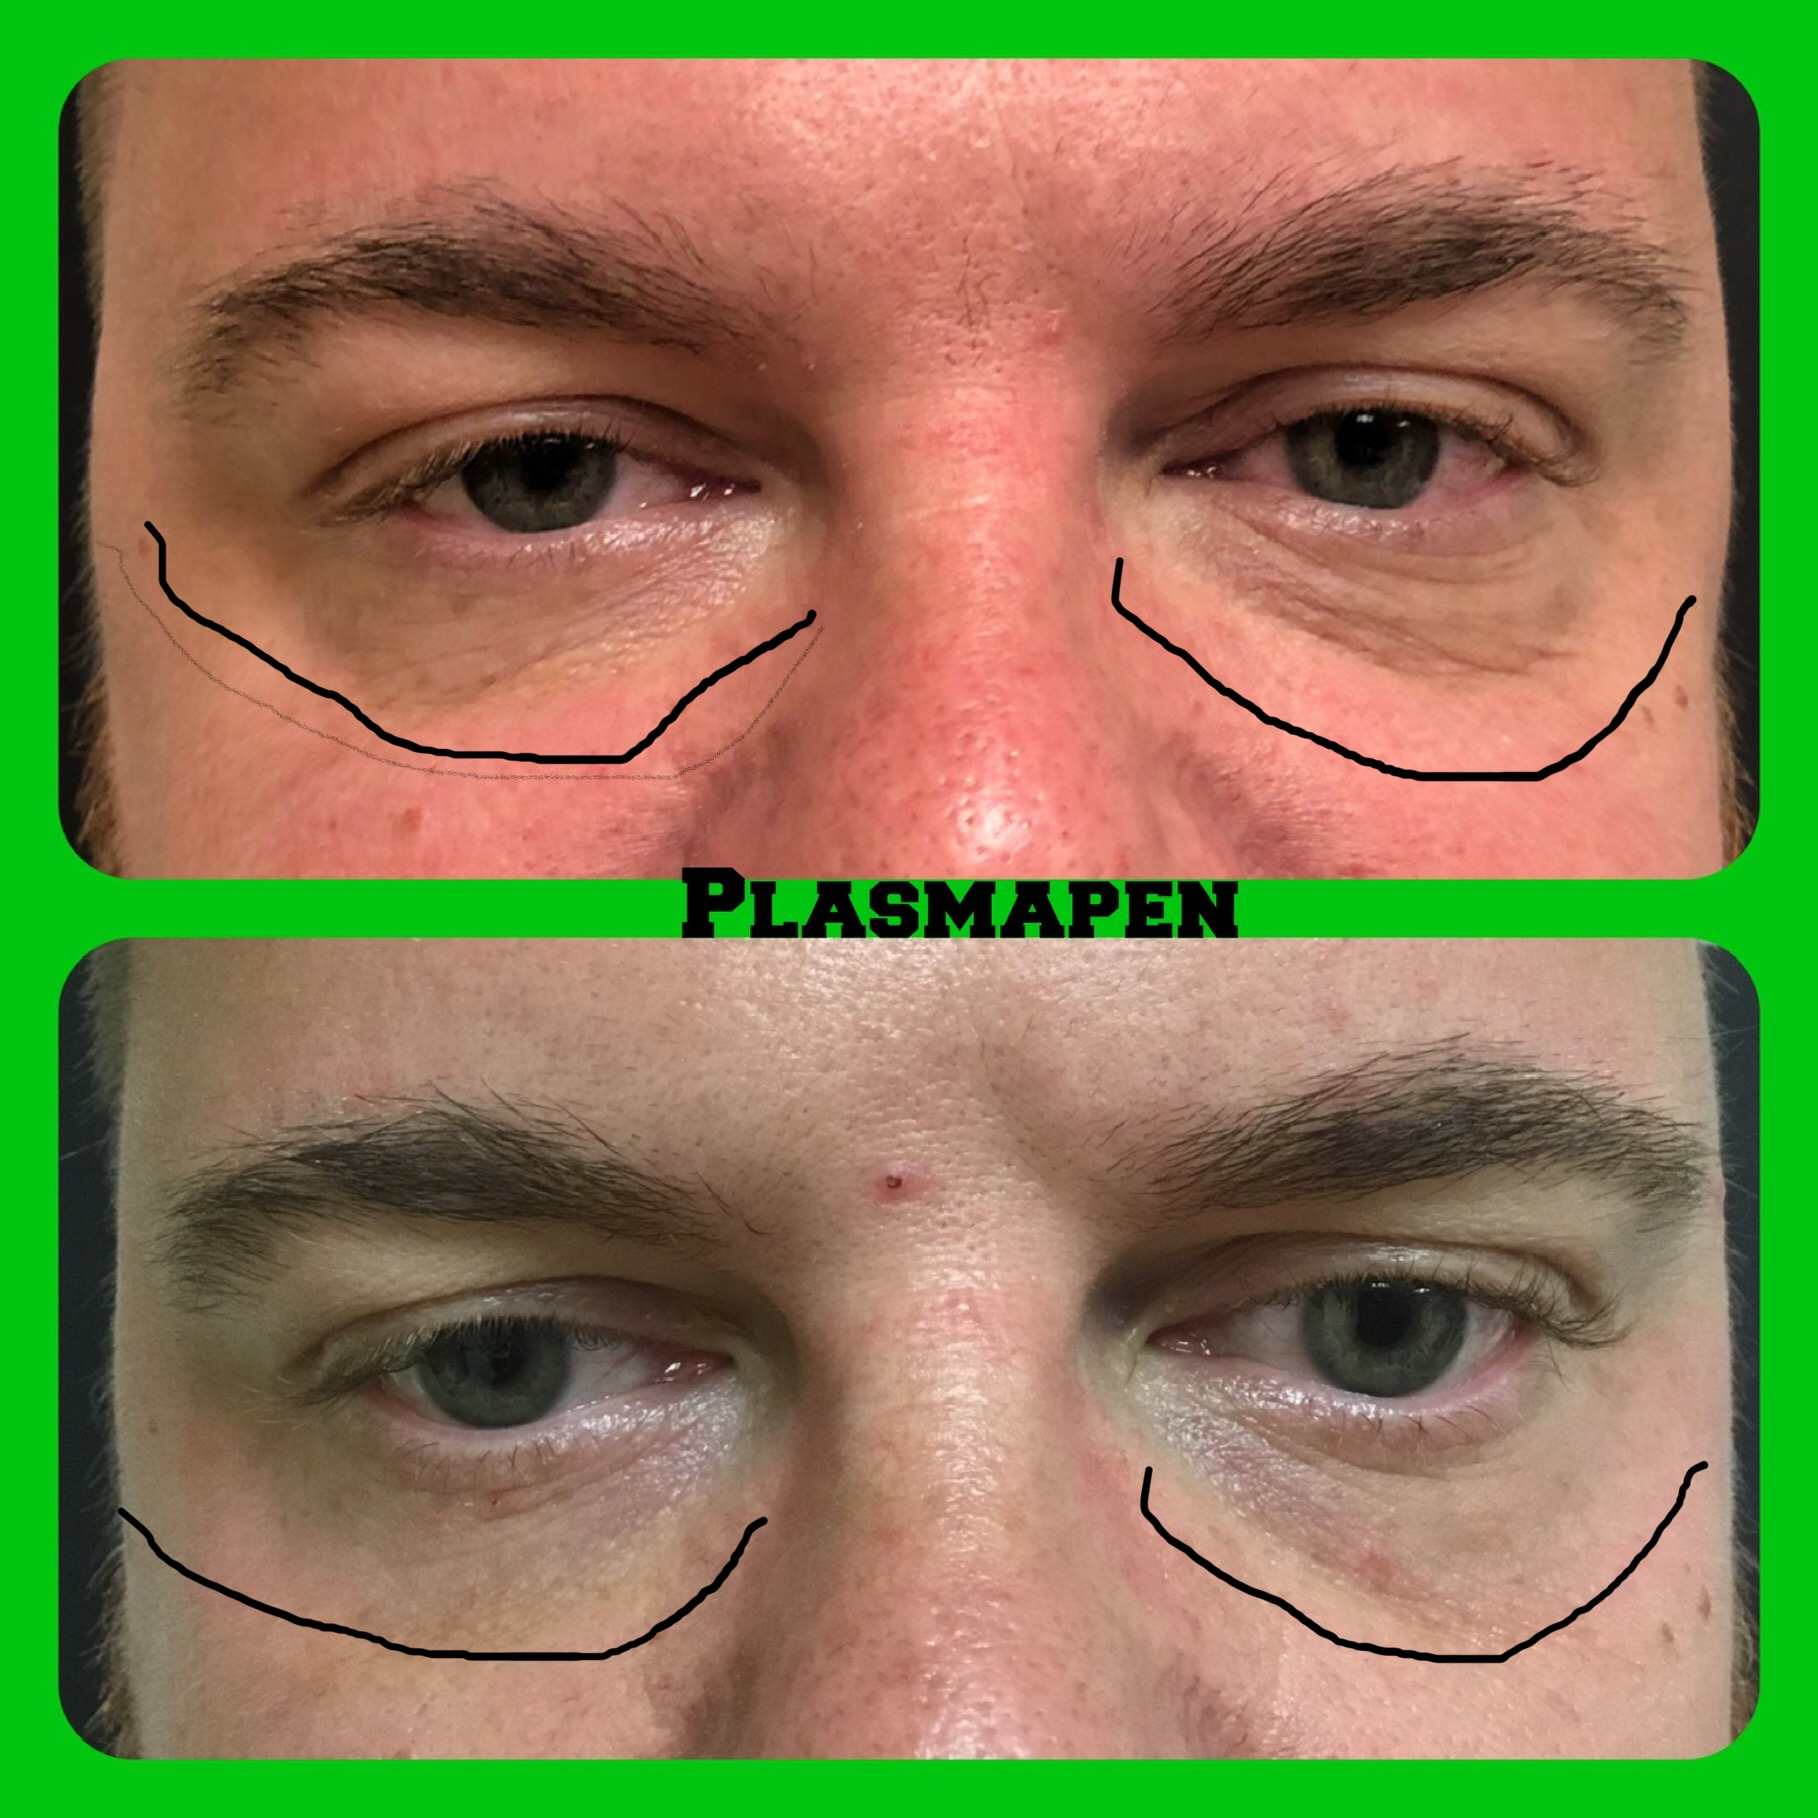 Before and after plasma pen under eye wrinkle treatment